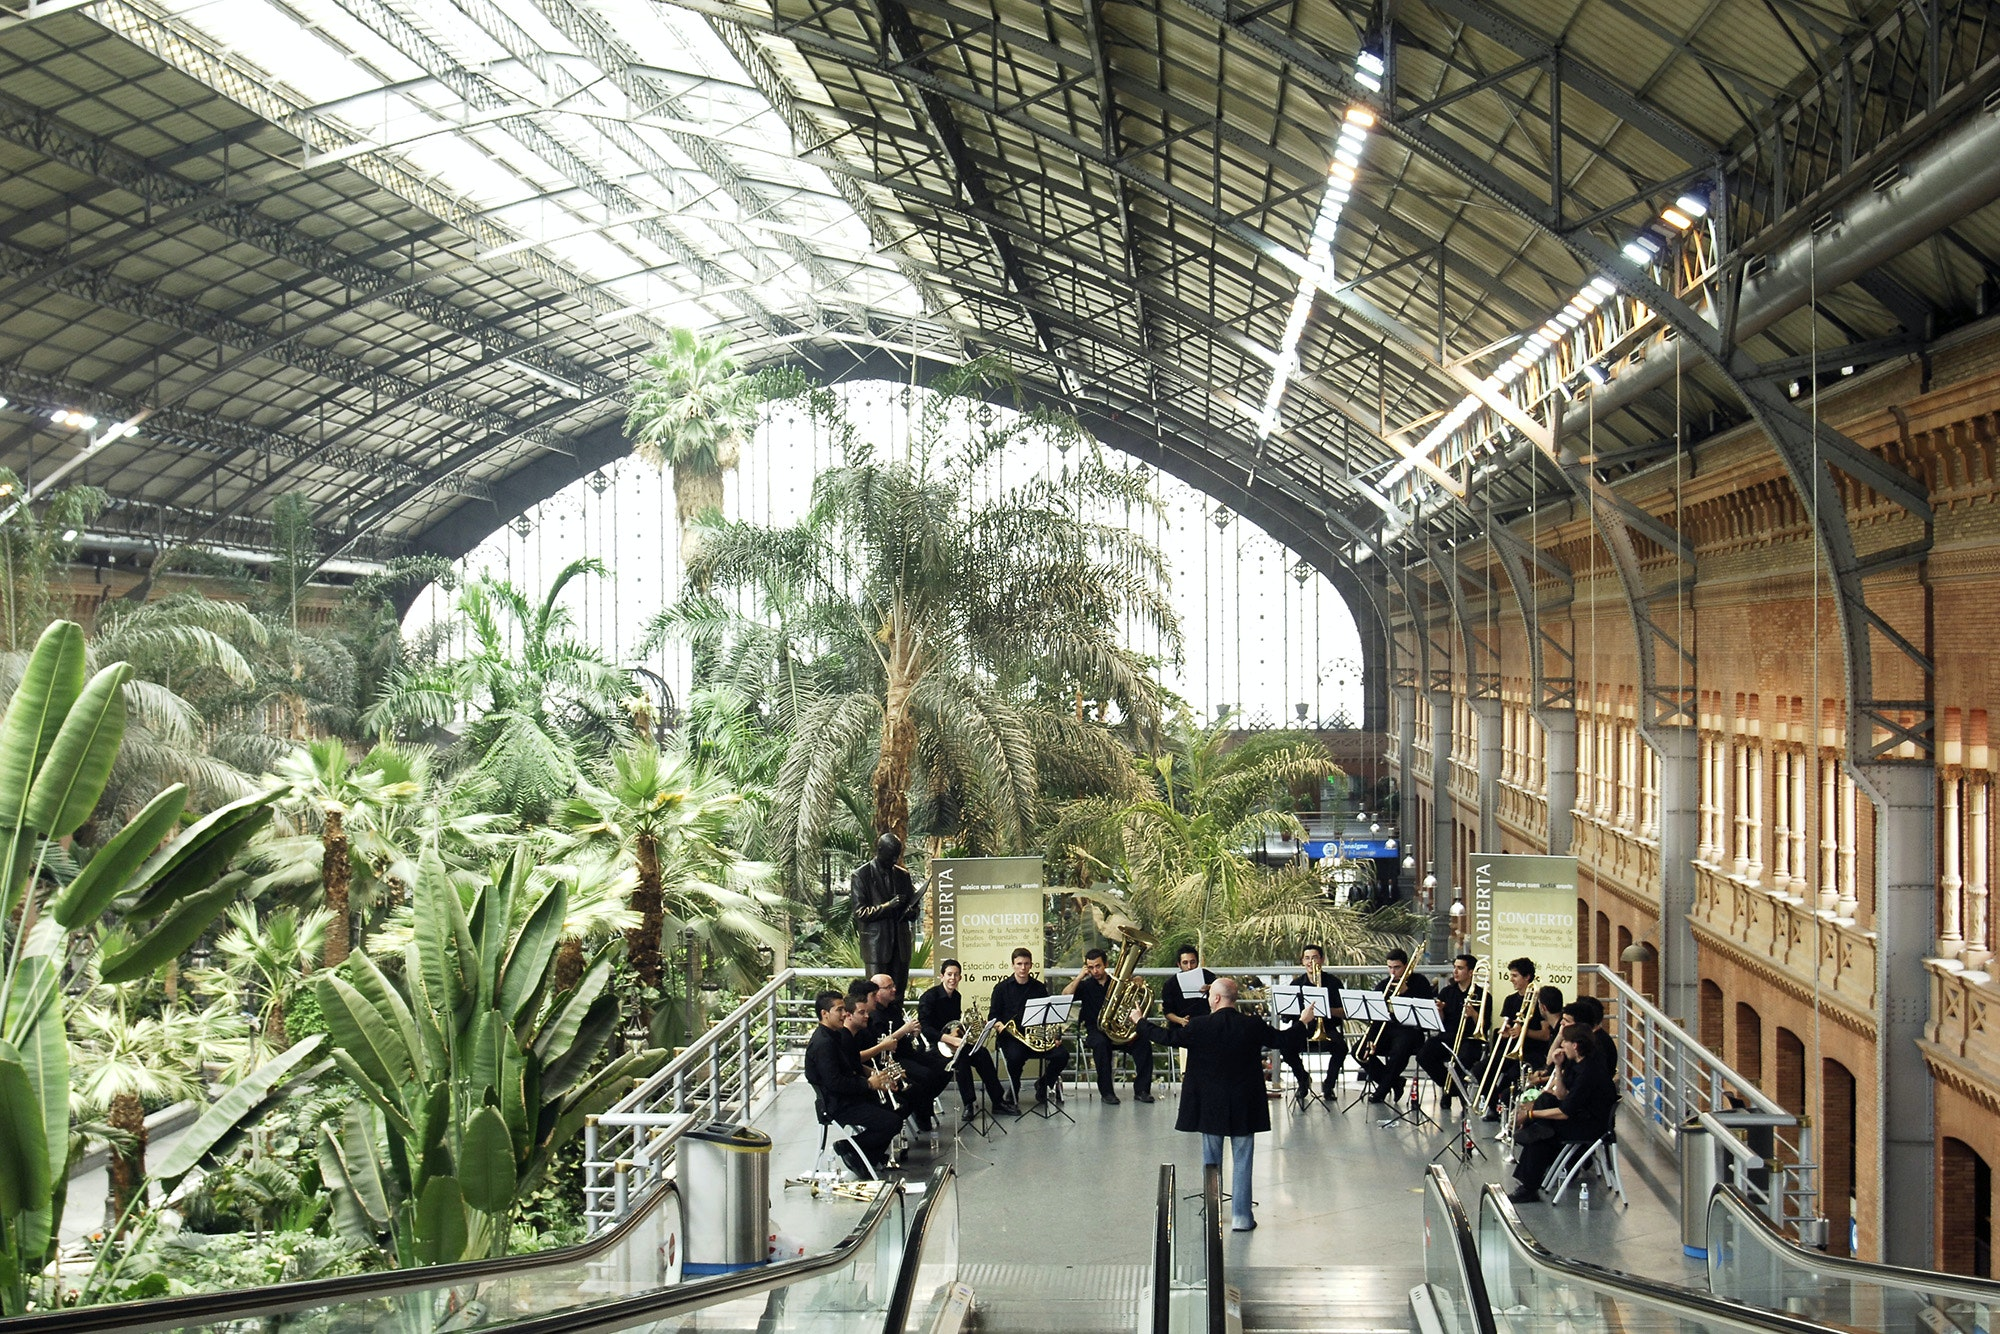 In the 1980s, Atocha train station's original building was transformed into a large atrium.